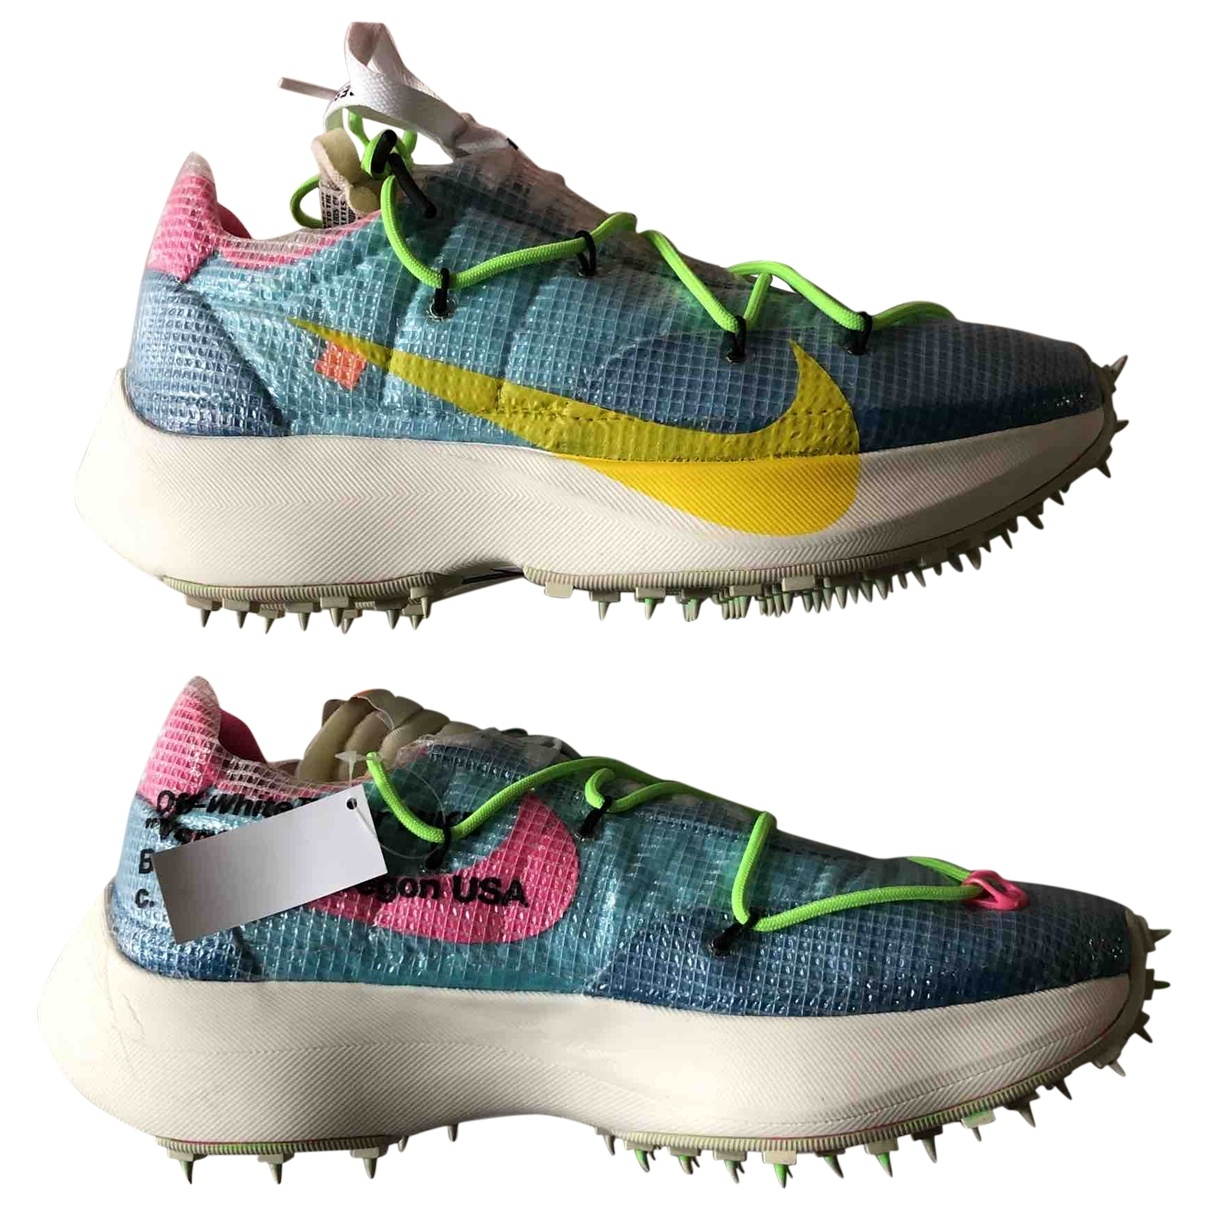 Nike X Off-white Vapor Street Turquoise Trainers for Men 9.5 US